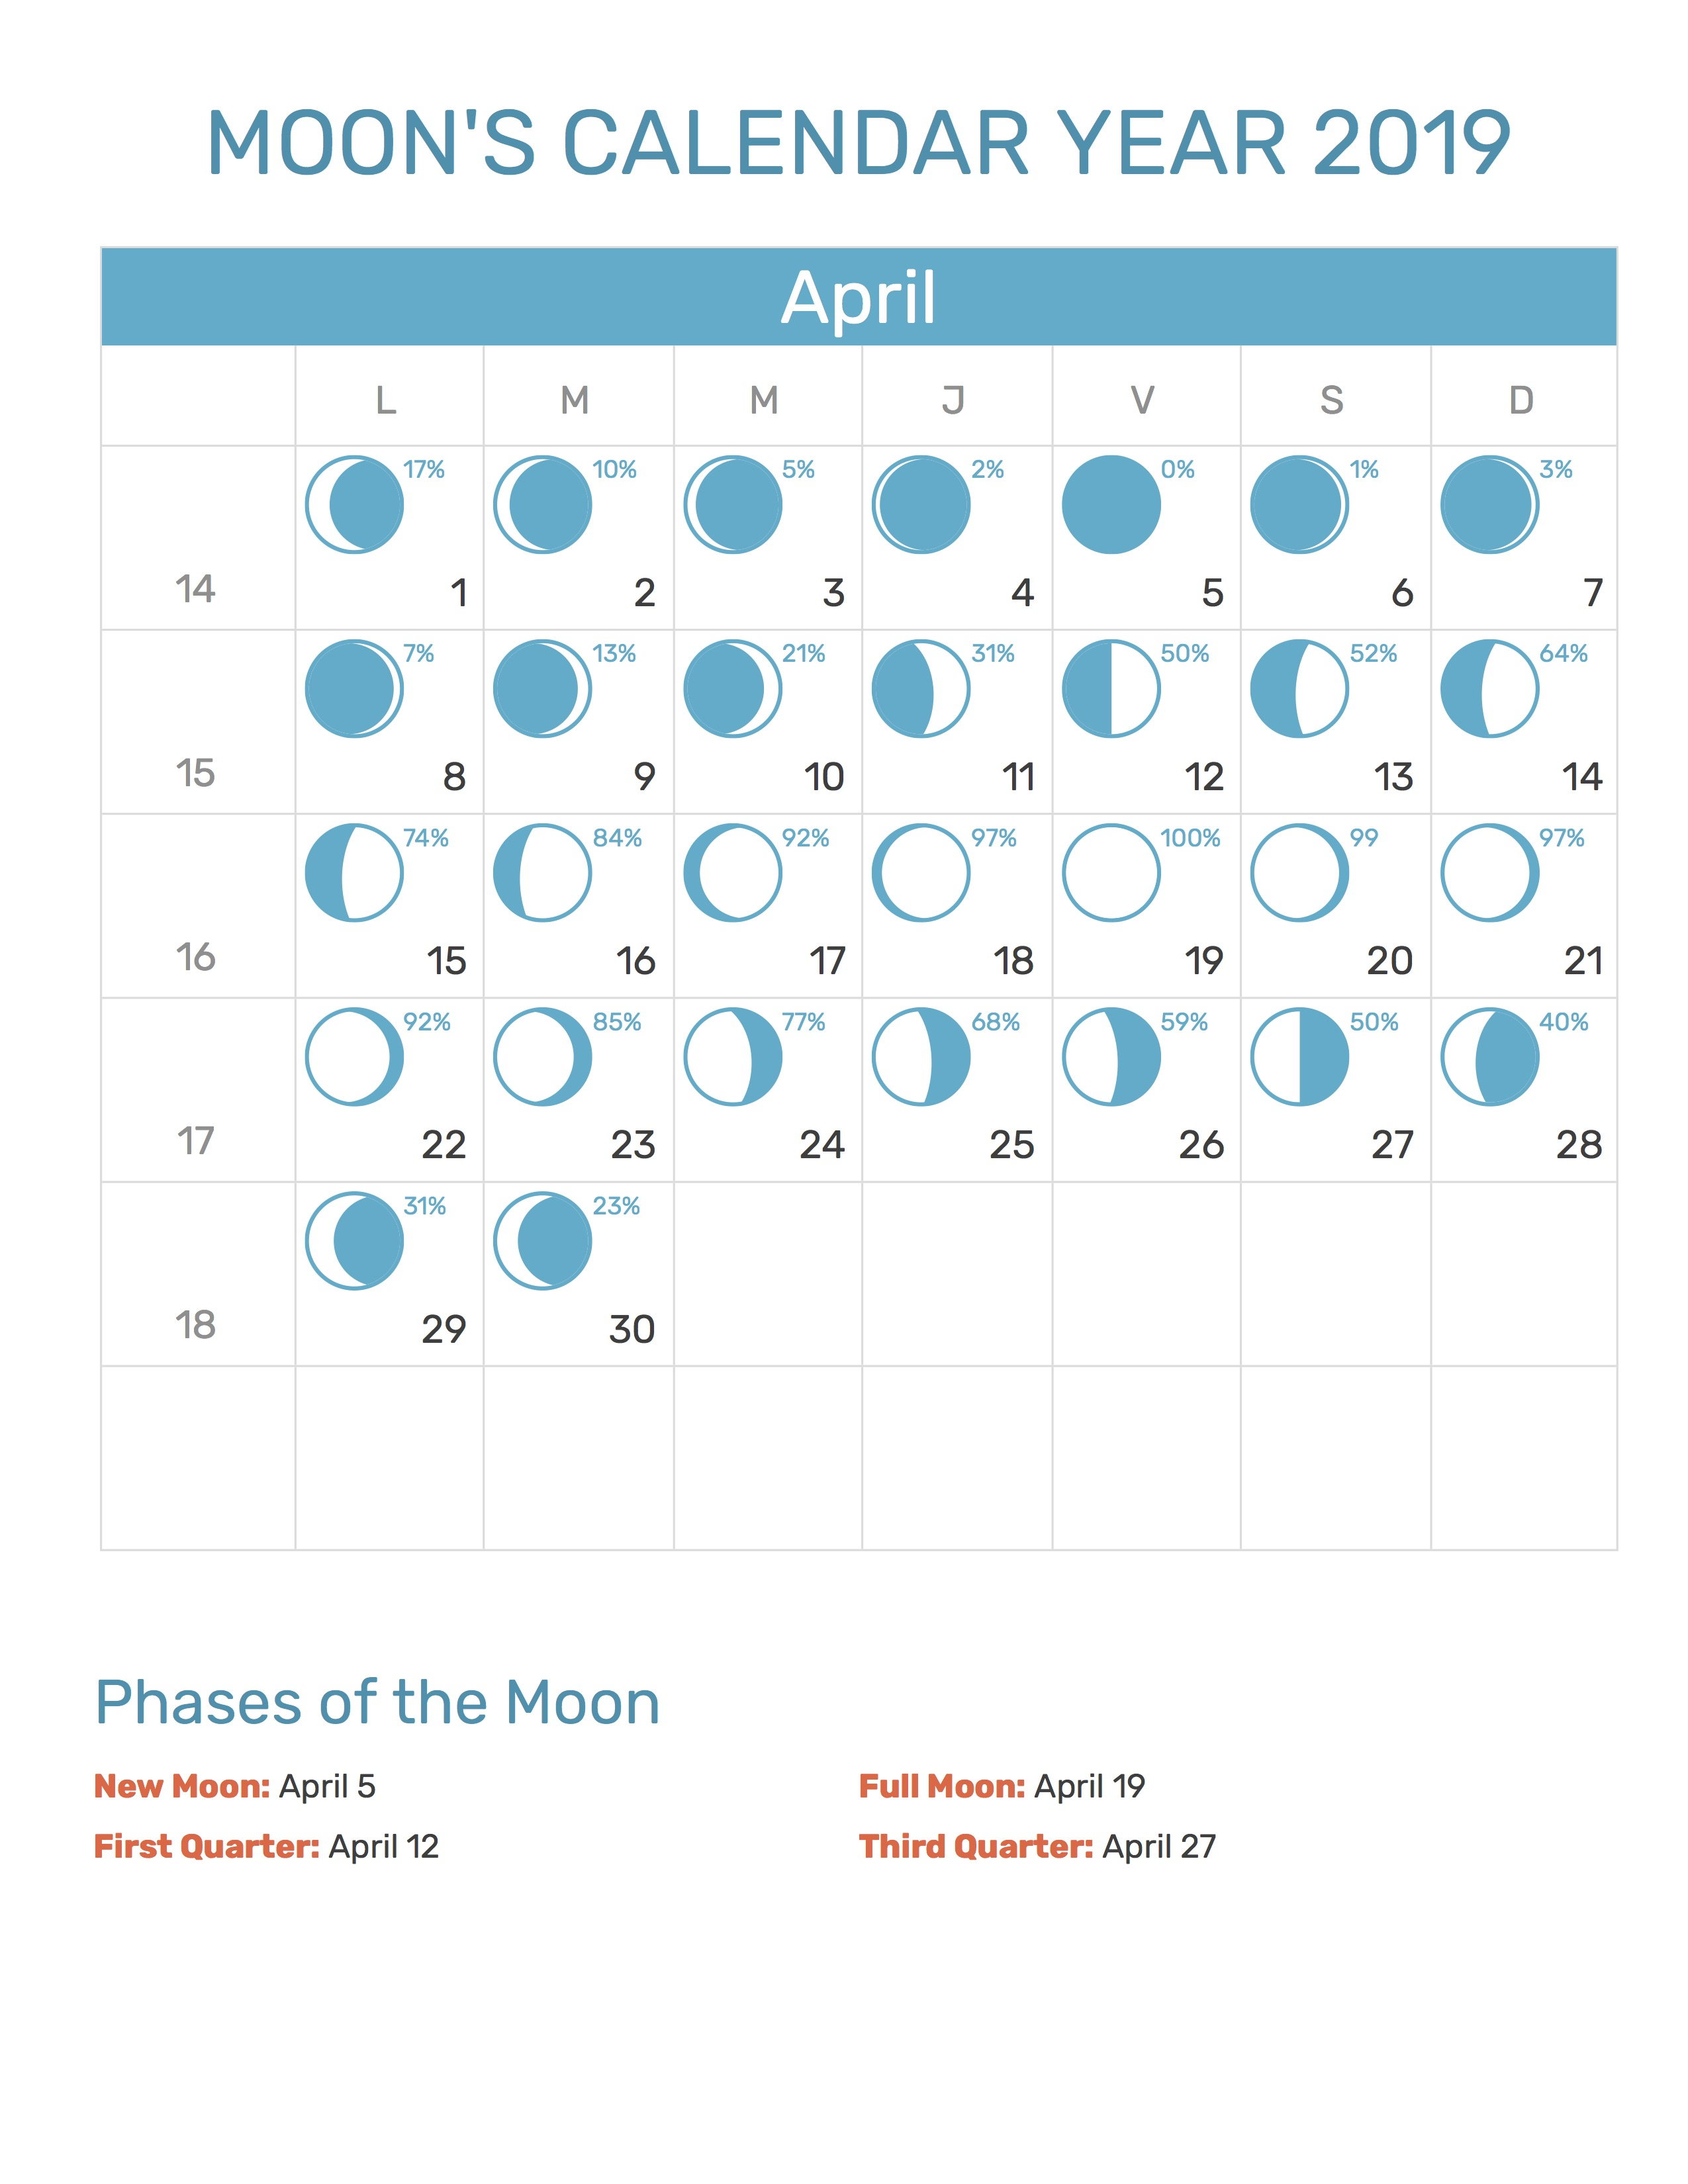 April 2019 Calendar Moon Phases